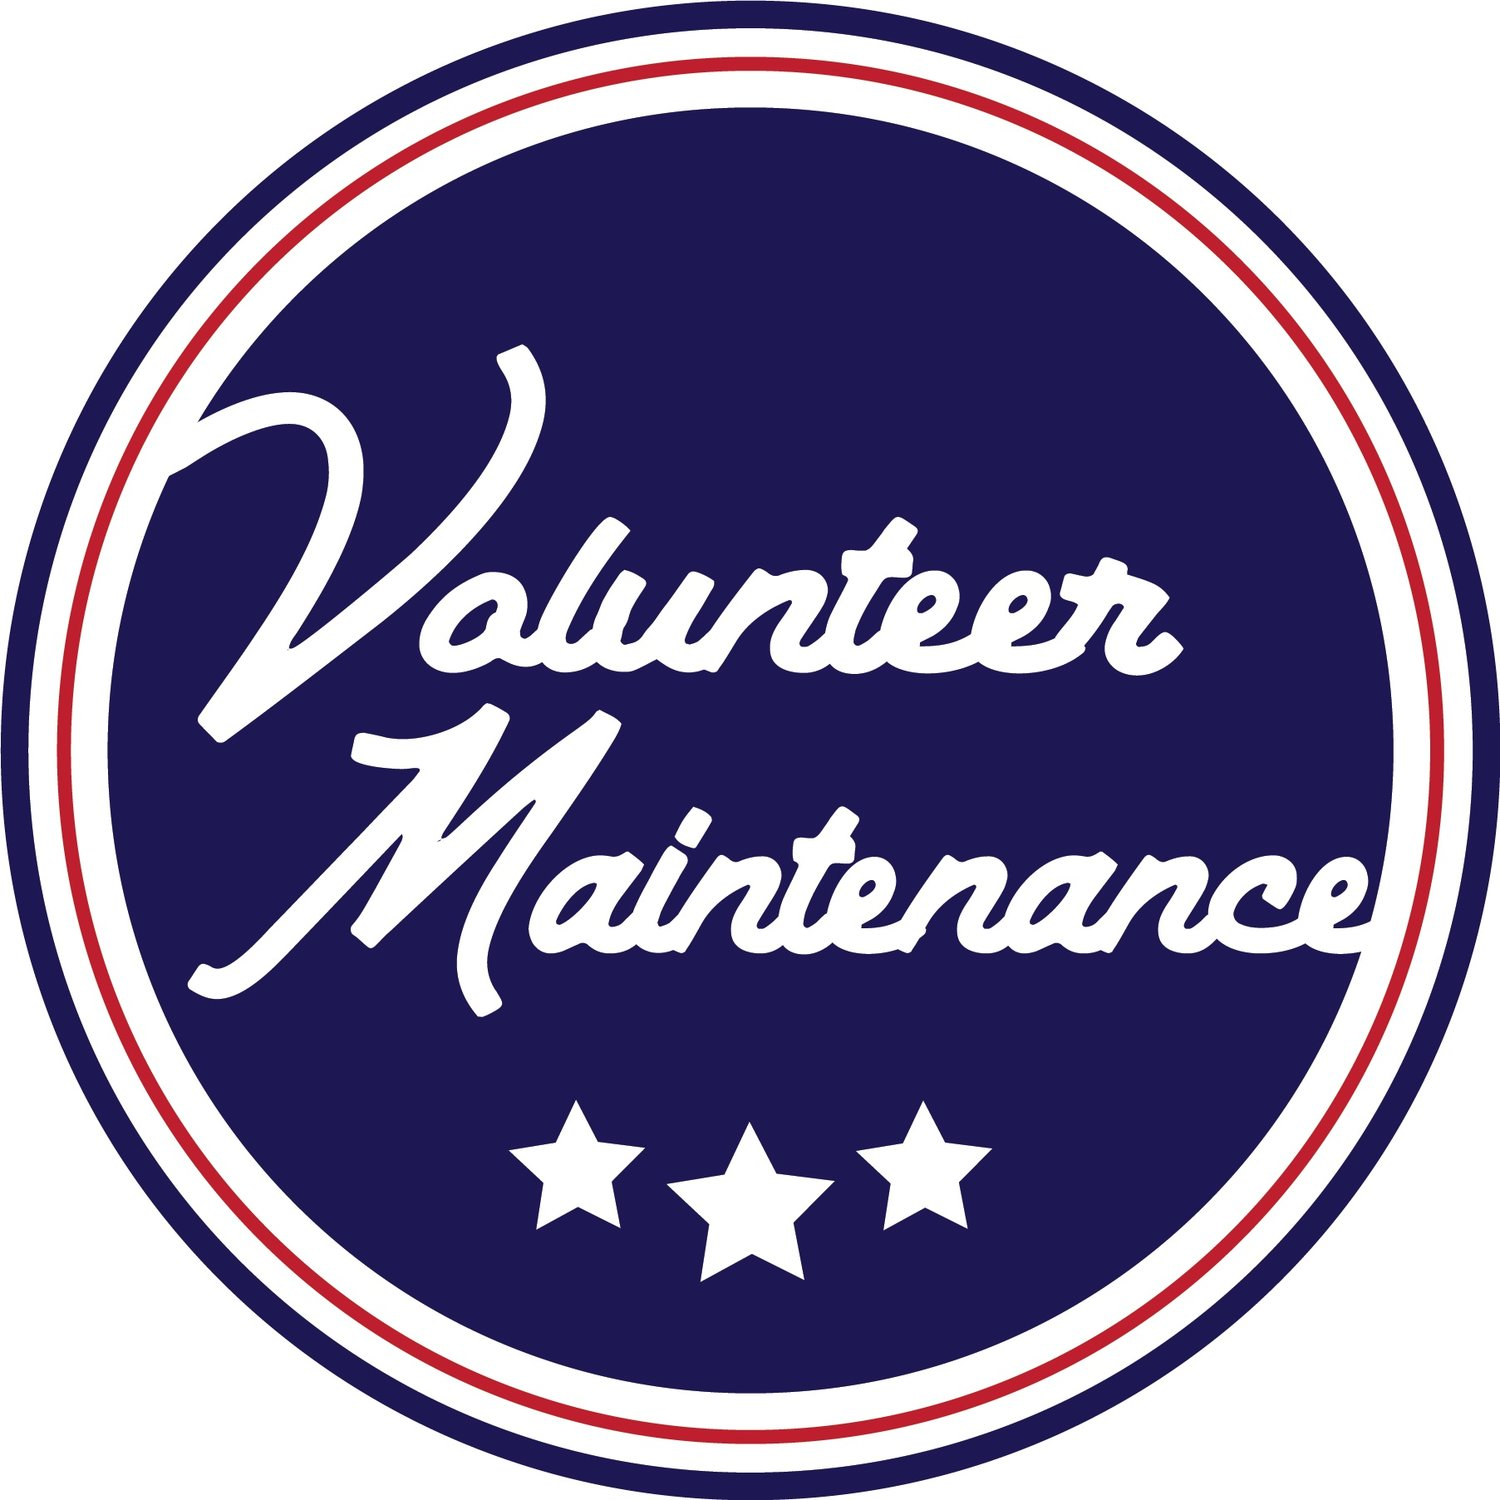 Volunteer Maintenance